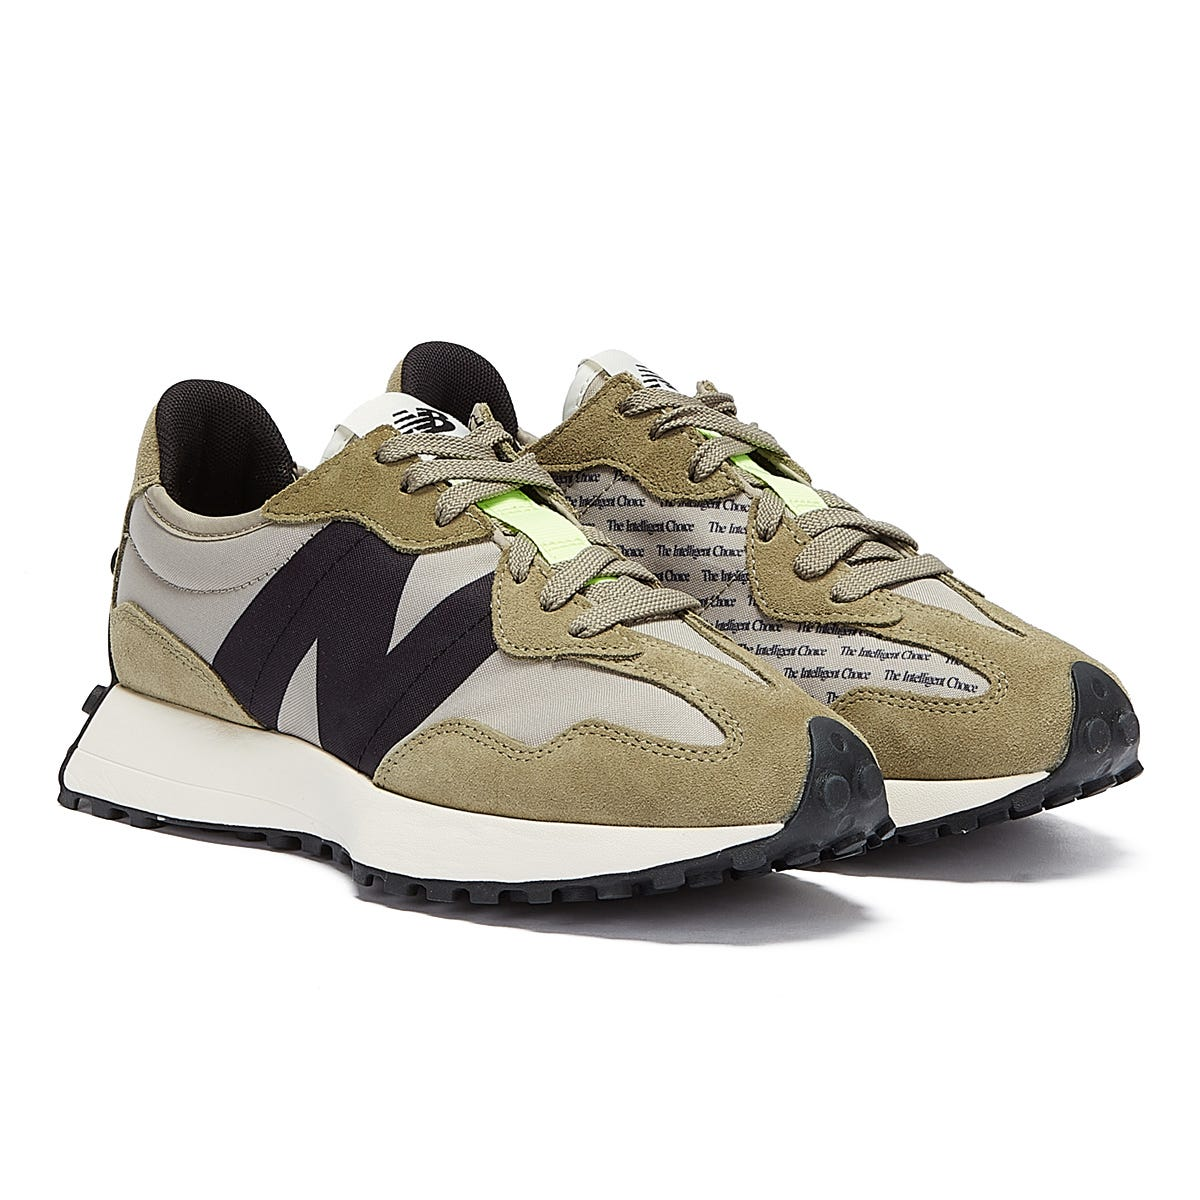 Trainers & Running Shoes New Balance 327 Mens Khaki / Grey Trainers